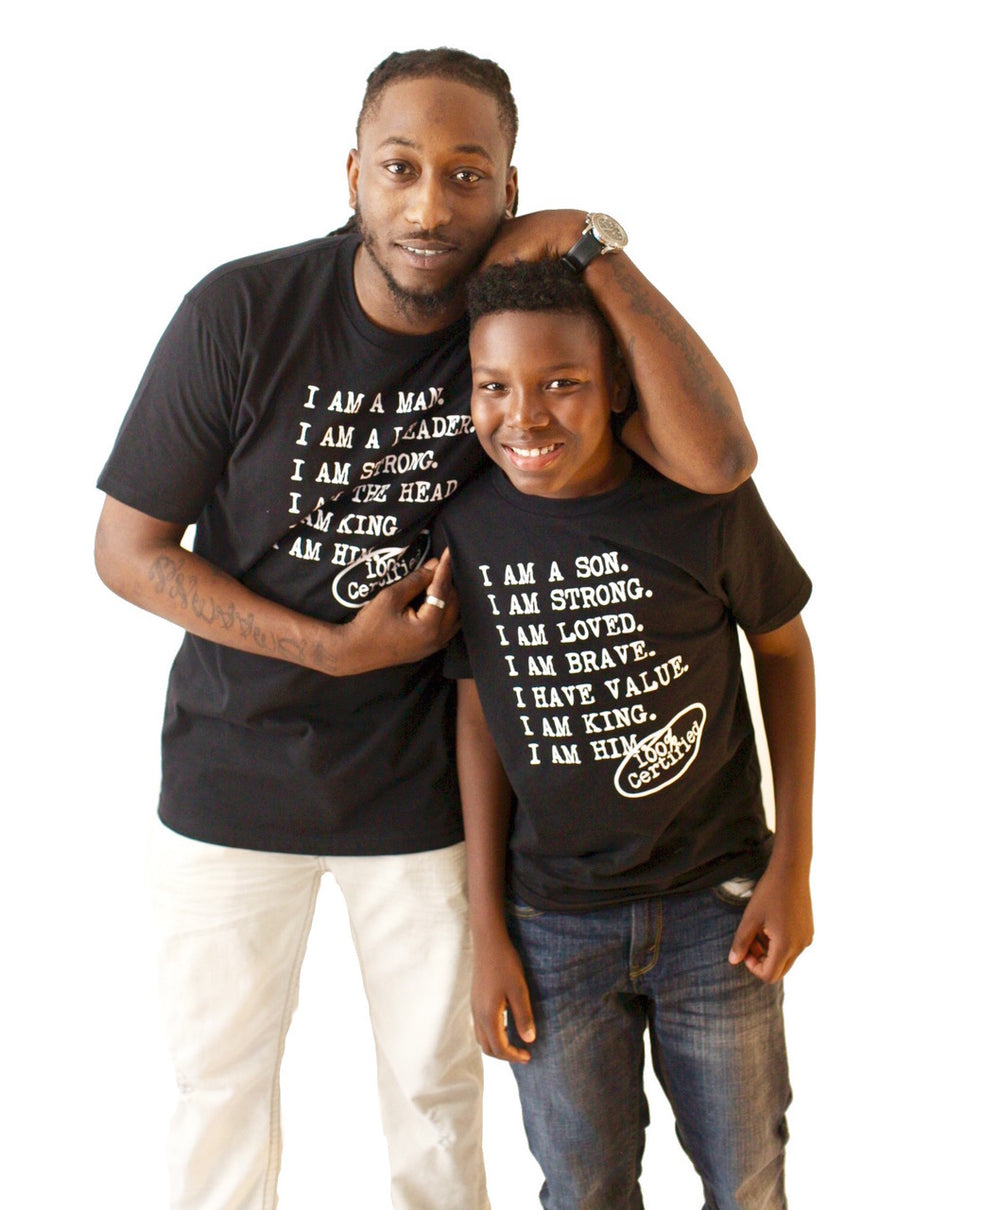 Two males wearing casual black t shirt with saying for men, I AM A MAN. I AM A LEADER. I AM A STRONG. I AM THE HEAD. I AM KING. I AM HIM -­‐ 100% CERTIFIED. Casual T Shirts for Men who unapologetically shows up in the world.